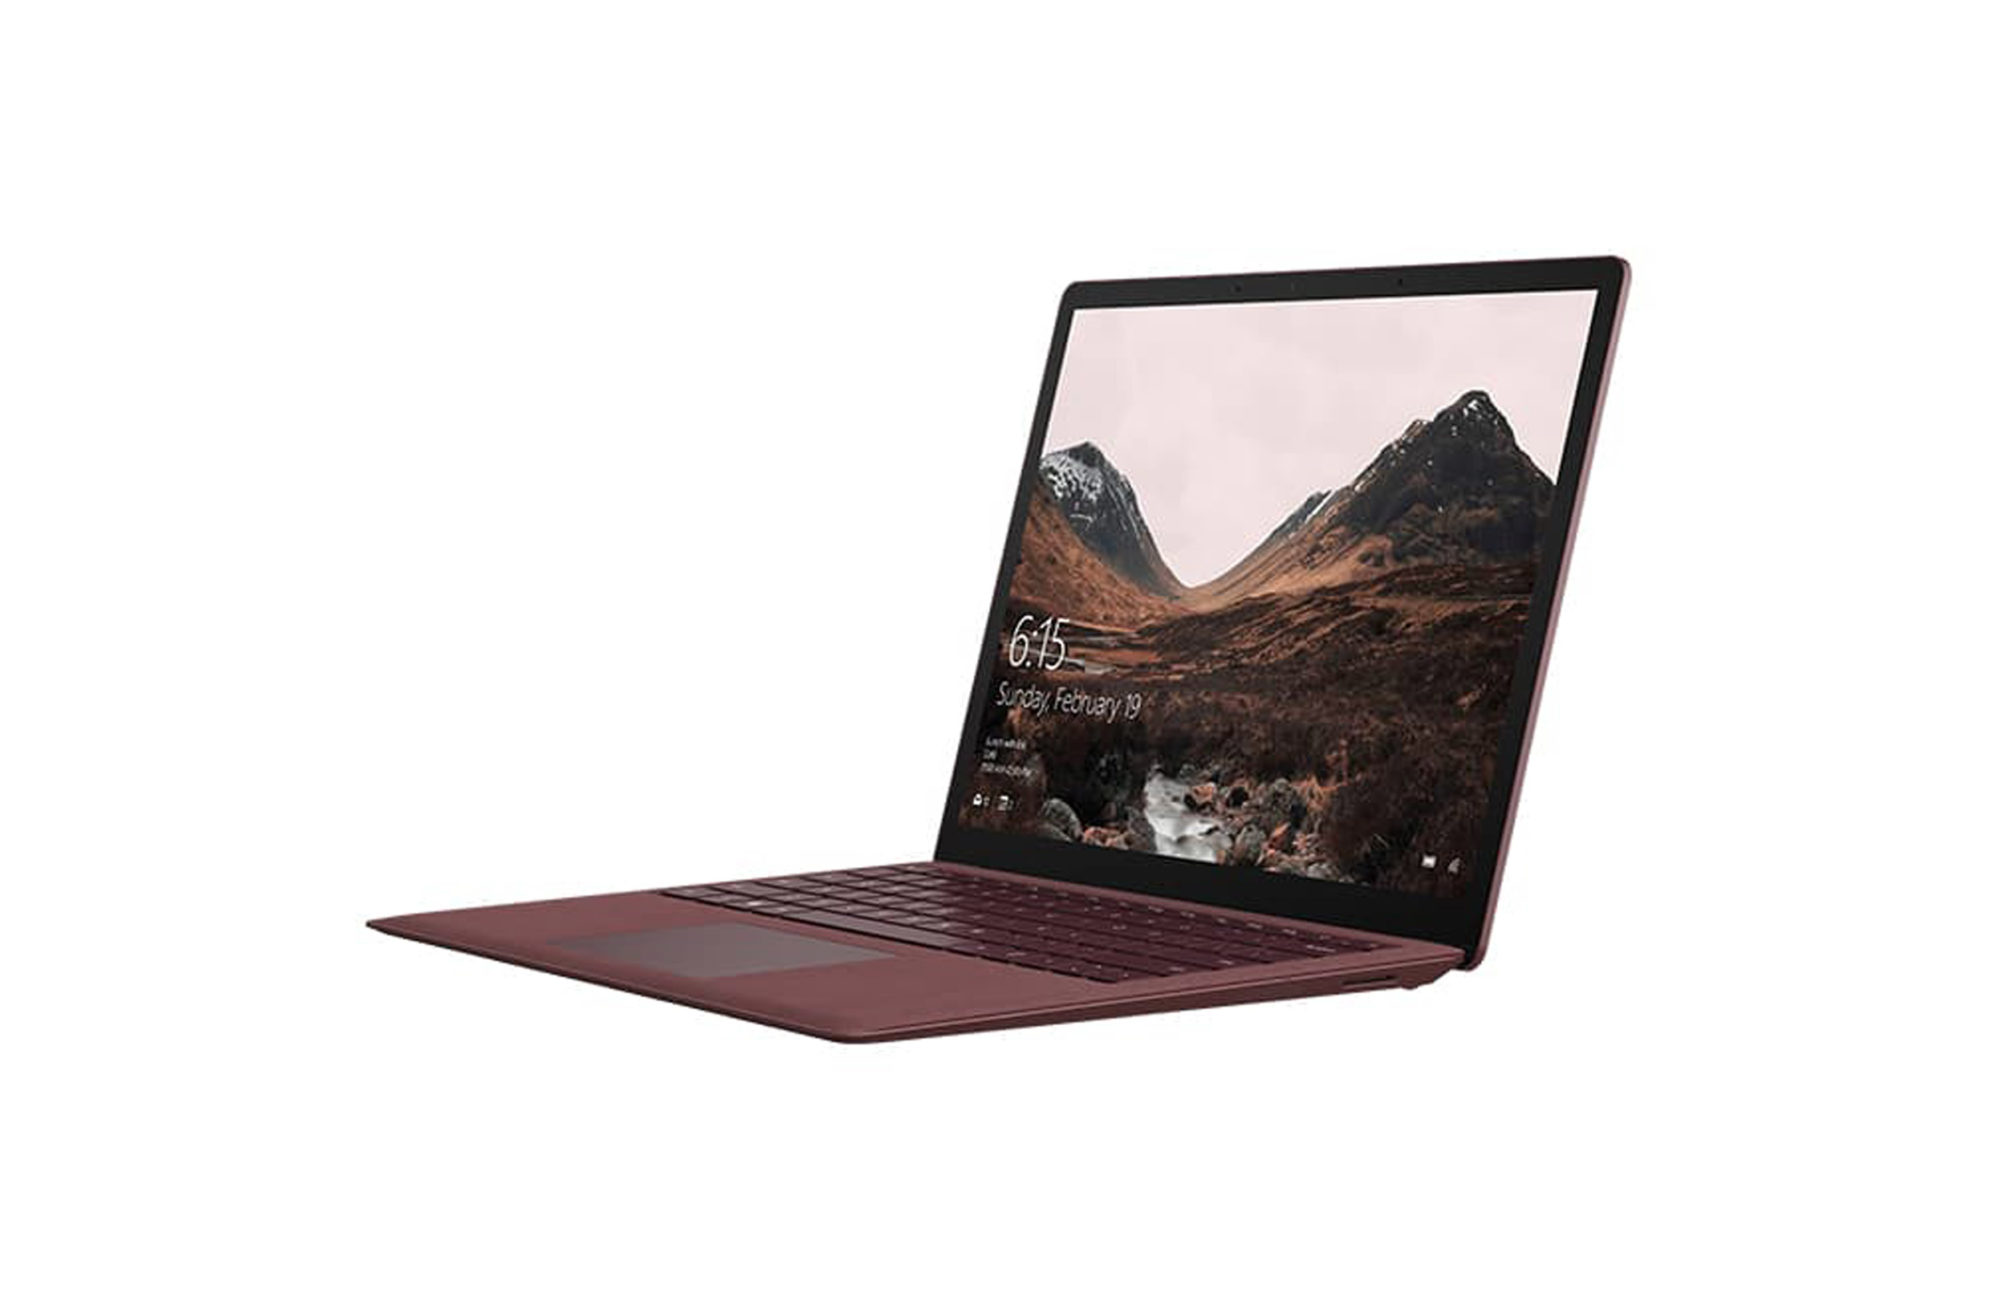 Microsoft's Surface Laptop RIVALS APPLE'S MACBOOK